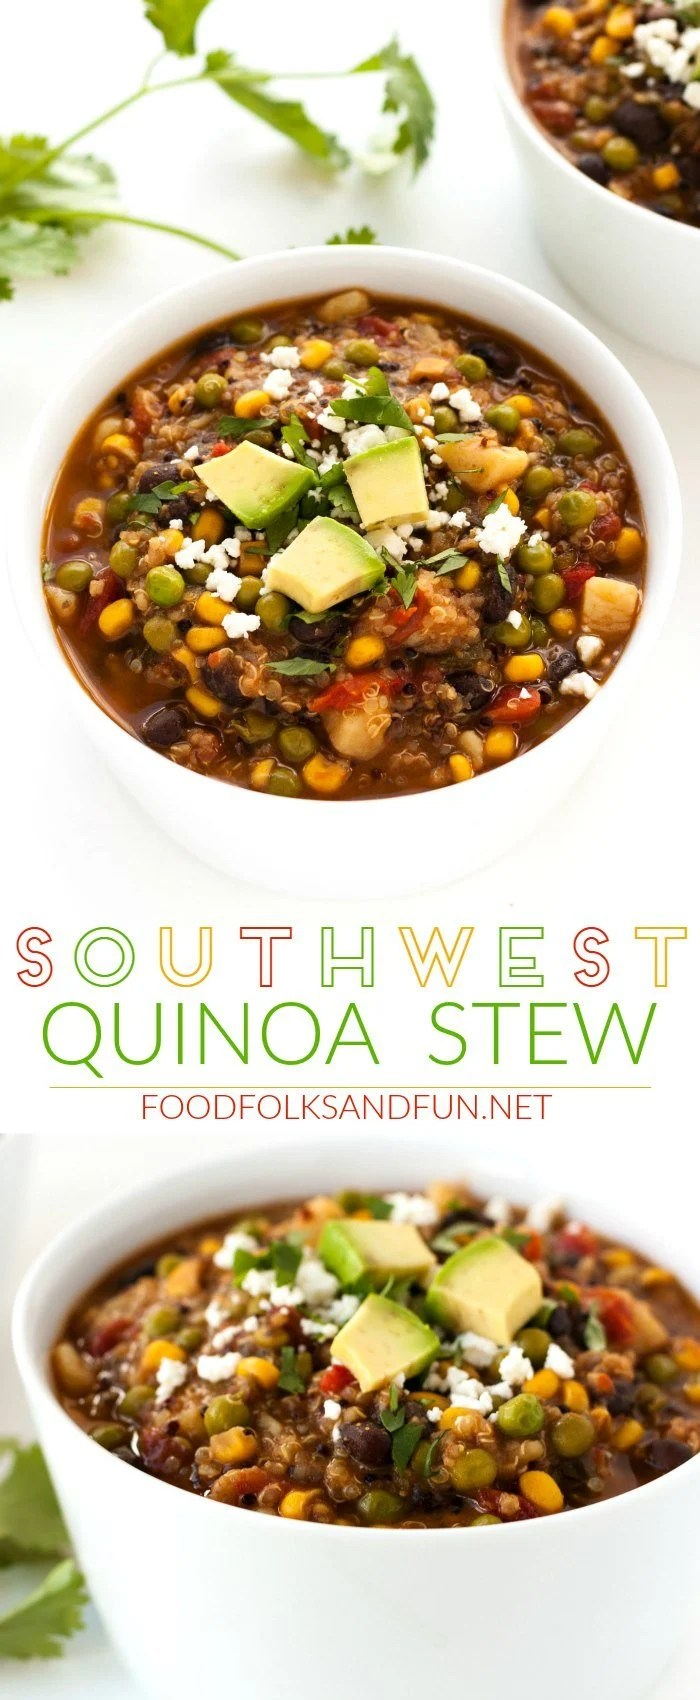 Picture collage of southwest quinoa stew.